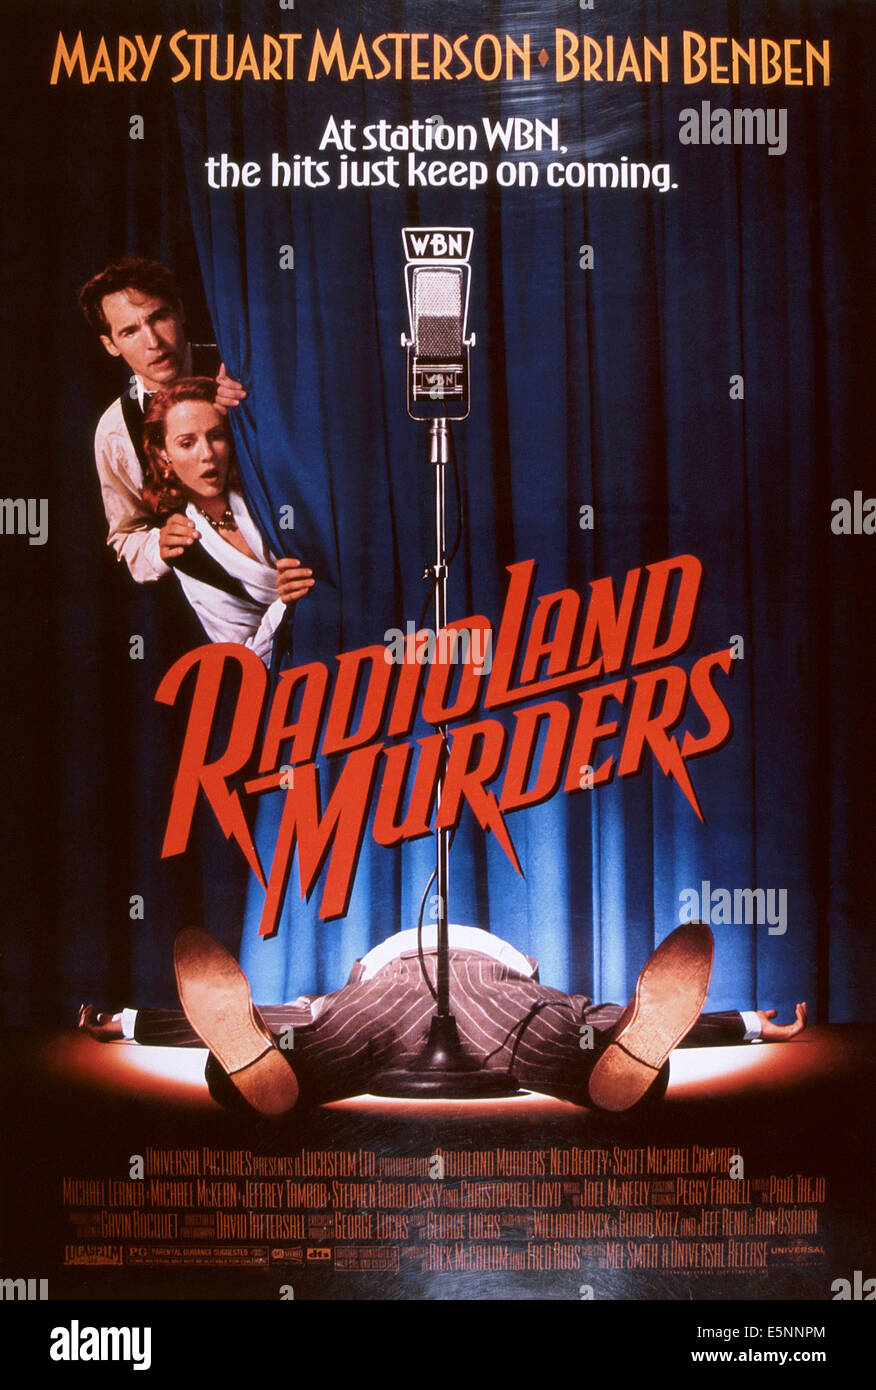 RADIOLAND MURDERS, US poster, from left: Brian Benben, Mary Stuart Masterson, 1994, © Universal/courtesy Everett Stock Photo